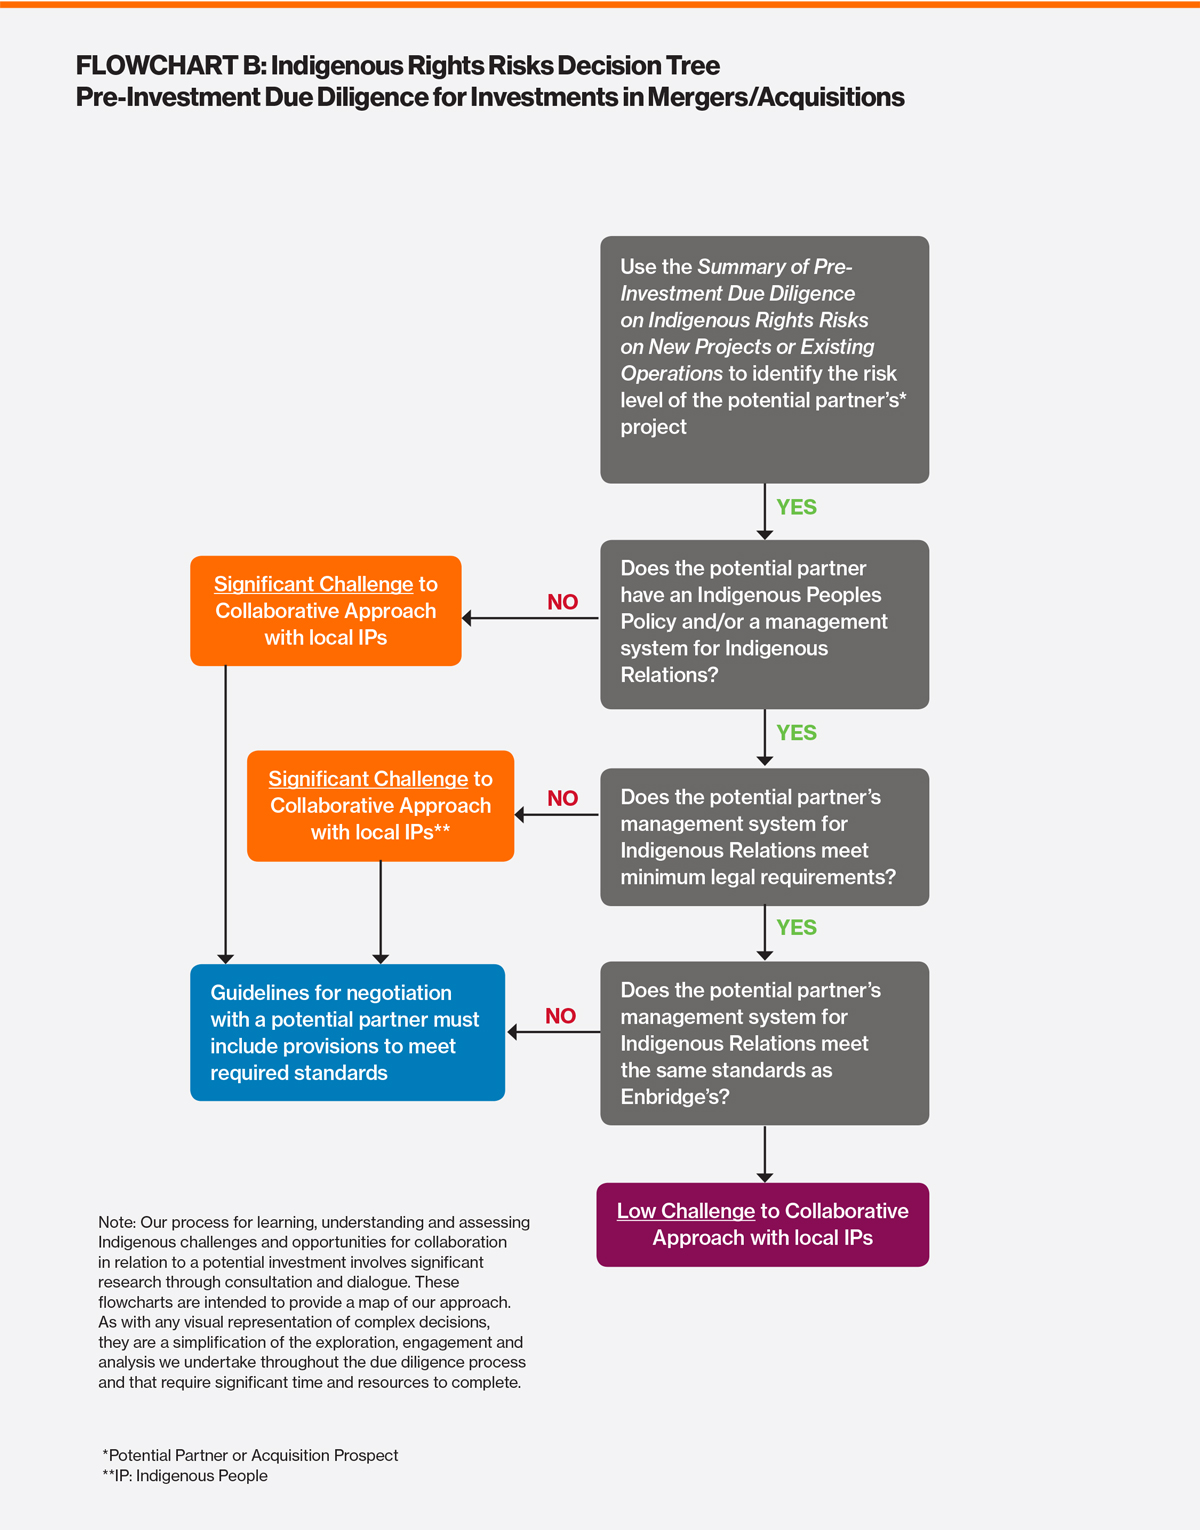 Flowchart B: Summary of Pre-Investment Dude Diligence on New Projects or Existing Operations